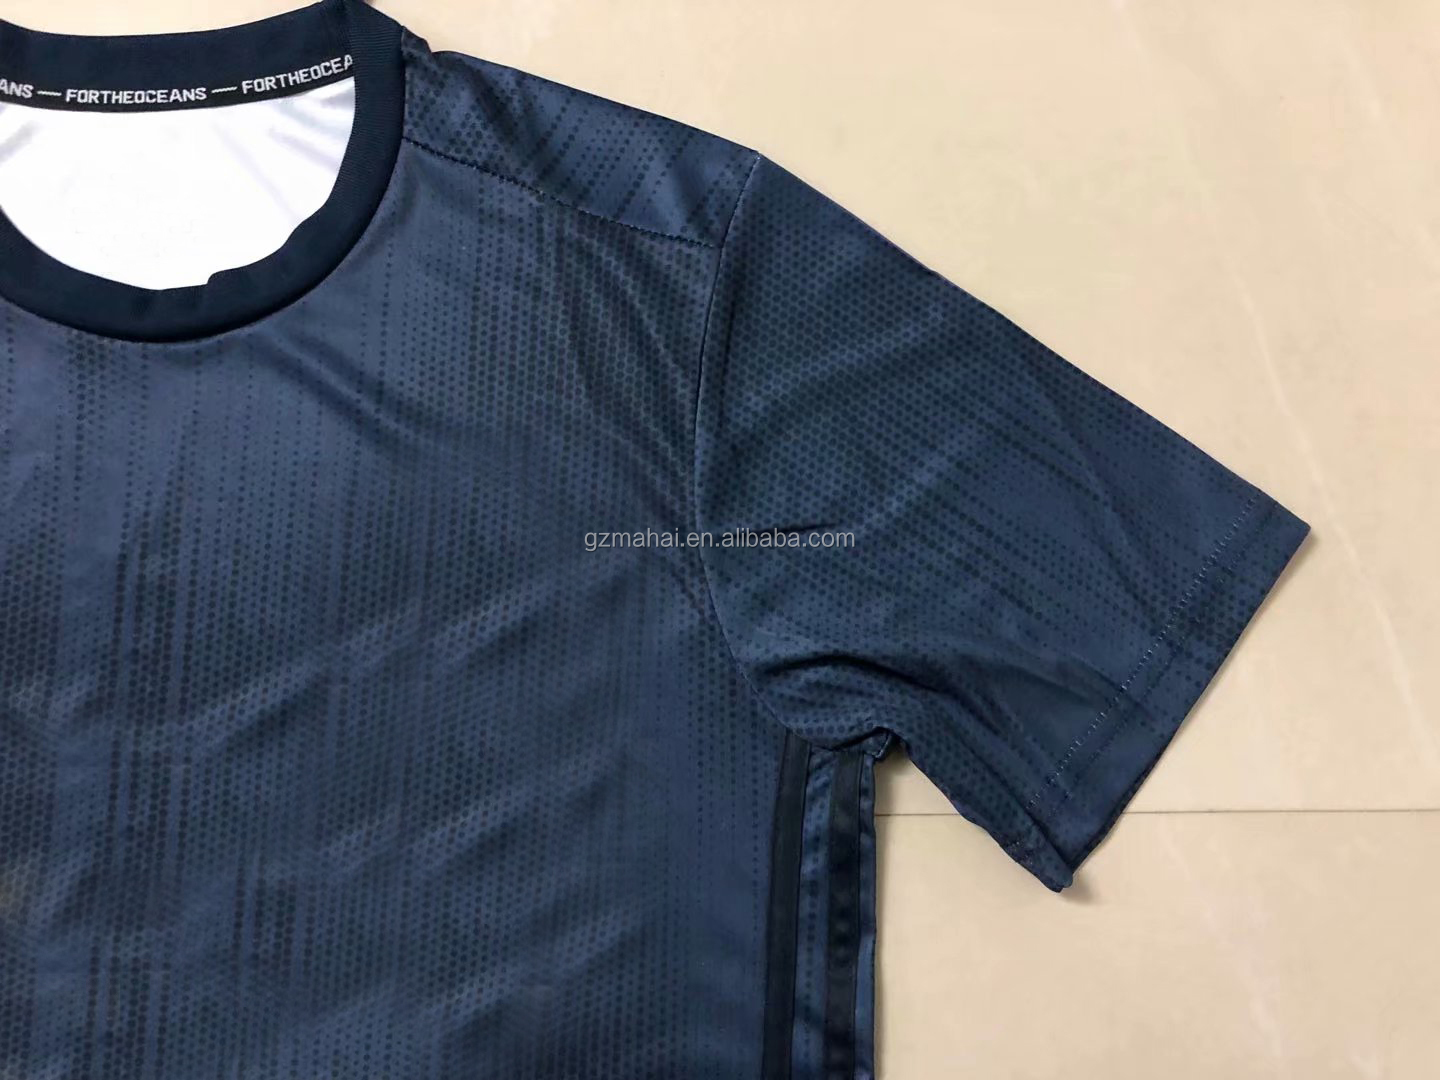 Top grade thailand quality 2018 2019 jersey custom soccer jersey